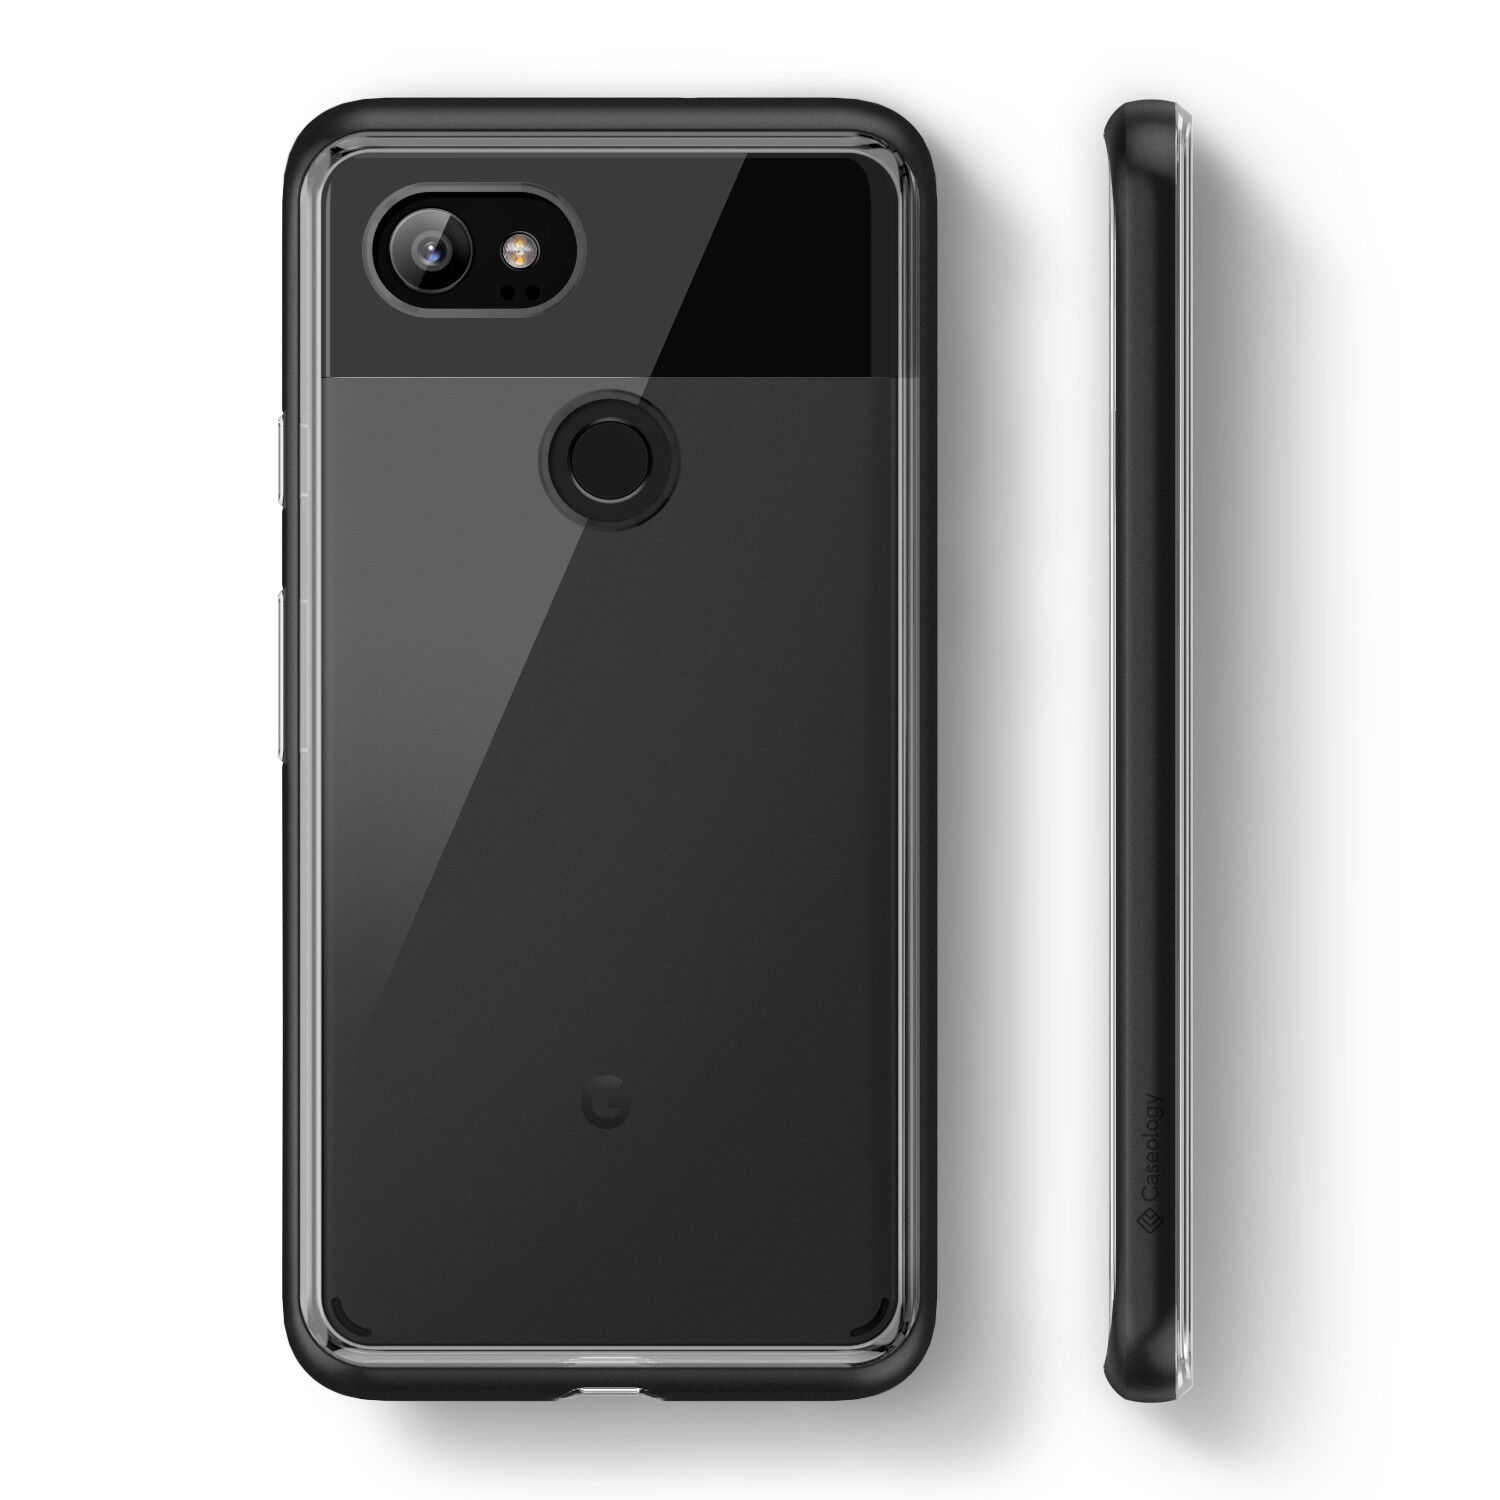 promo code cd82f 46245 For Google Pixel 2 XL Case Caseology® [SKYFALL] Protective Slim Clear Cover